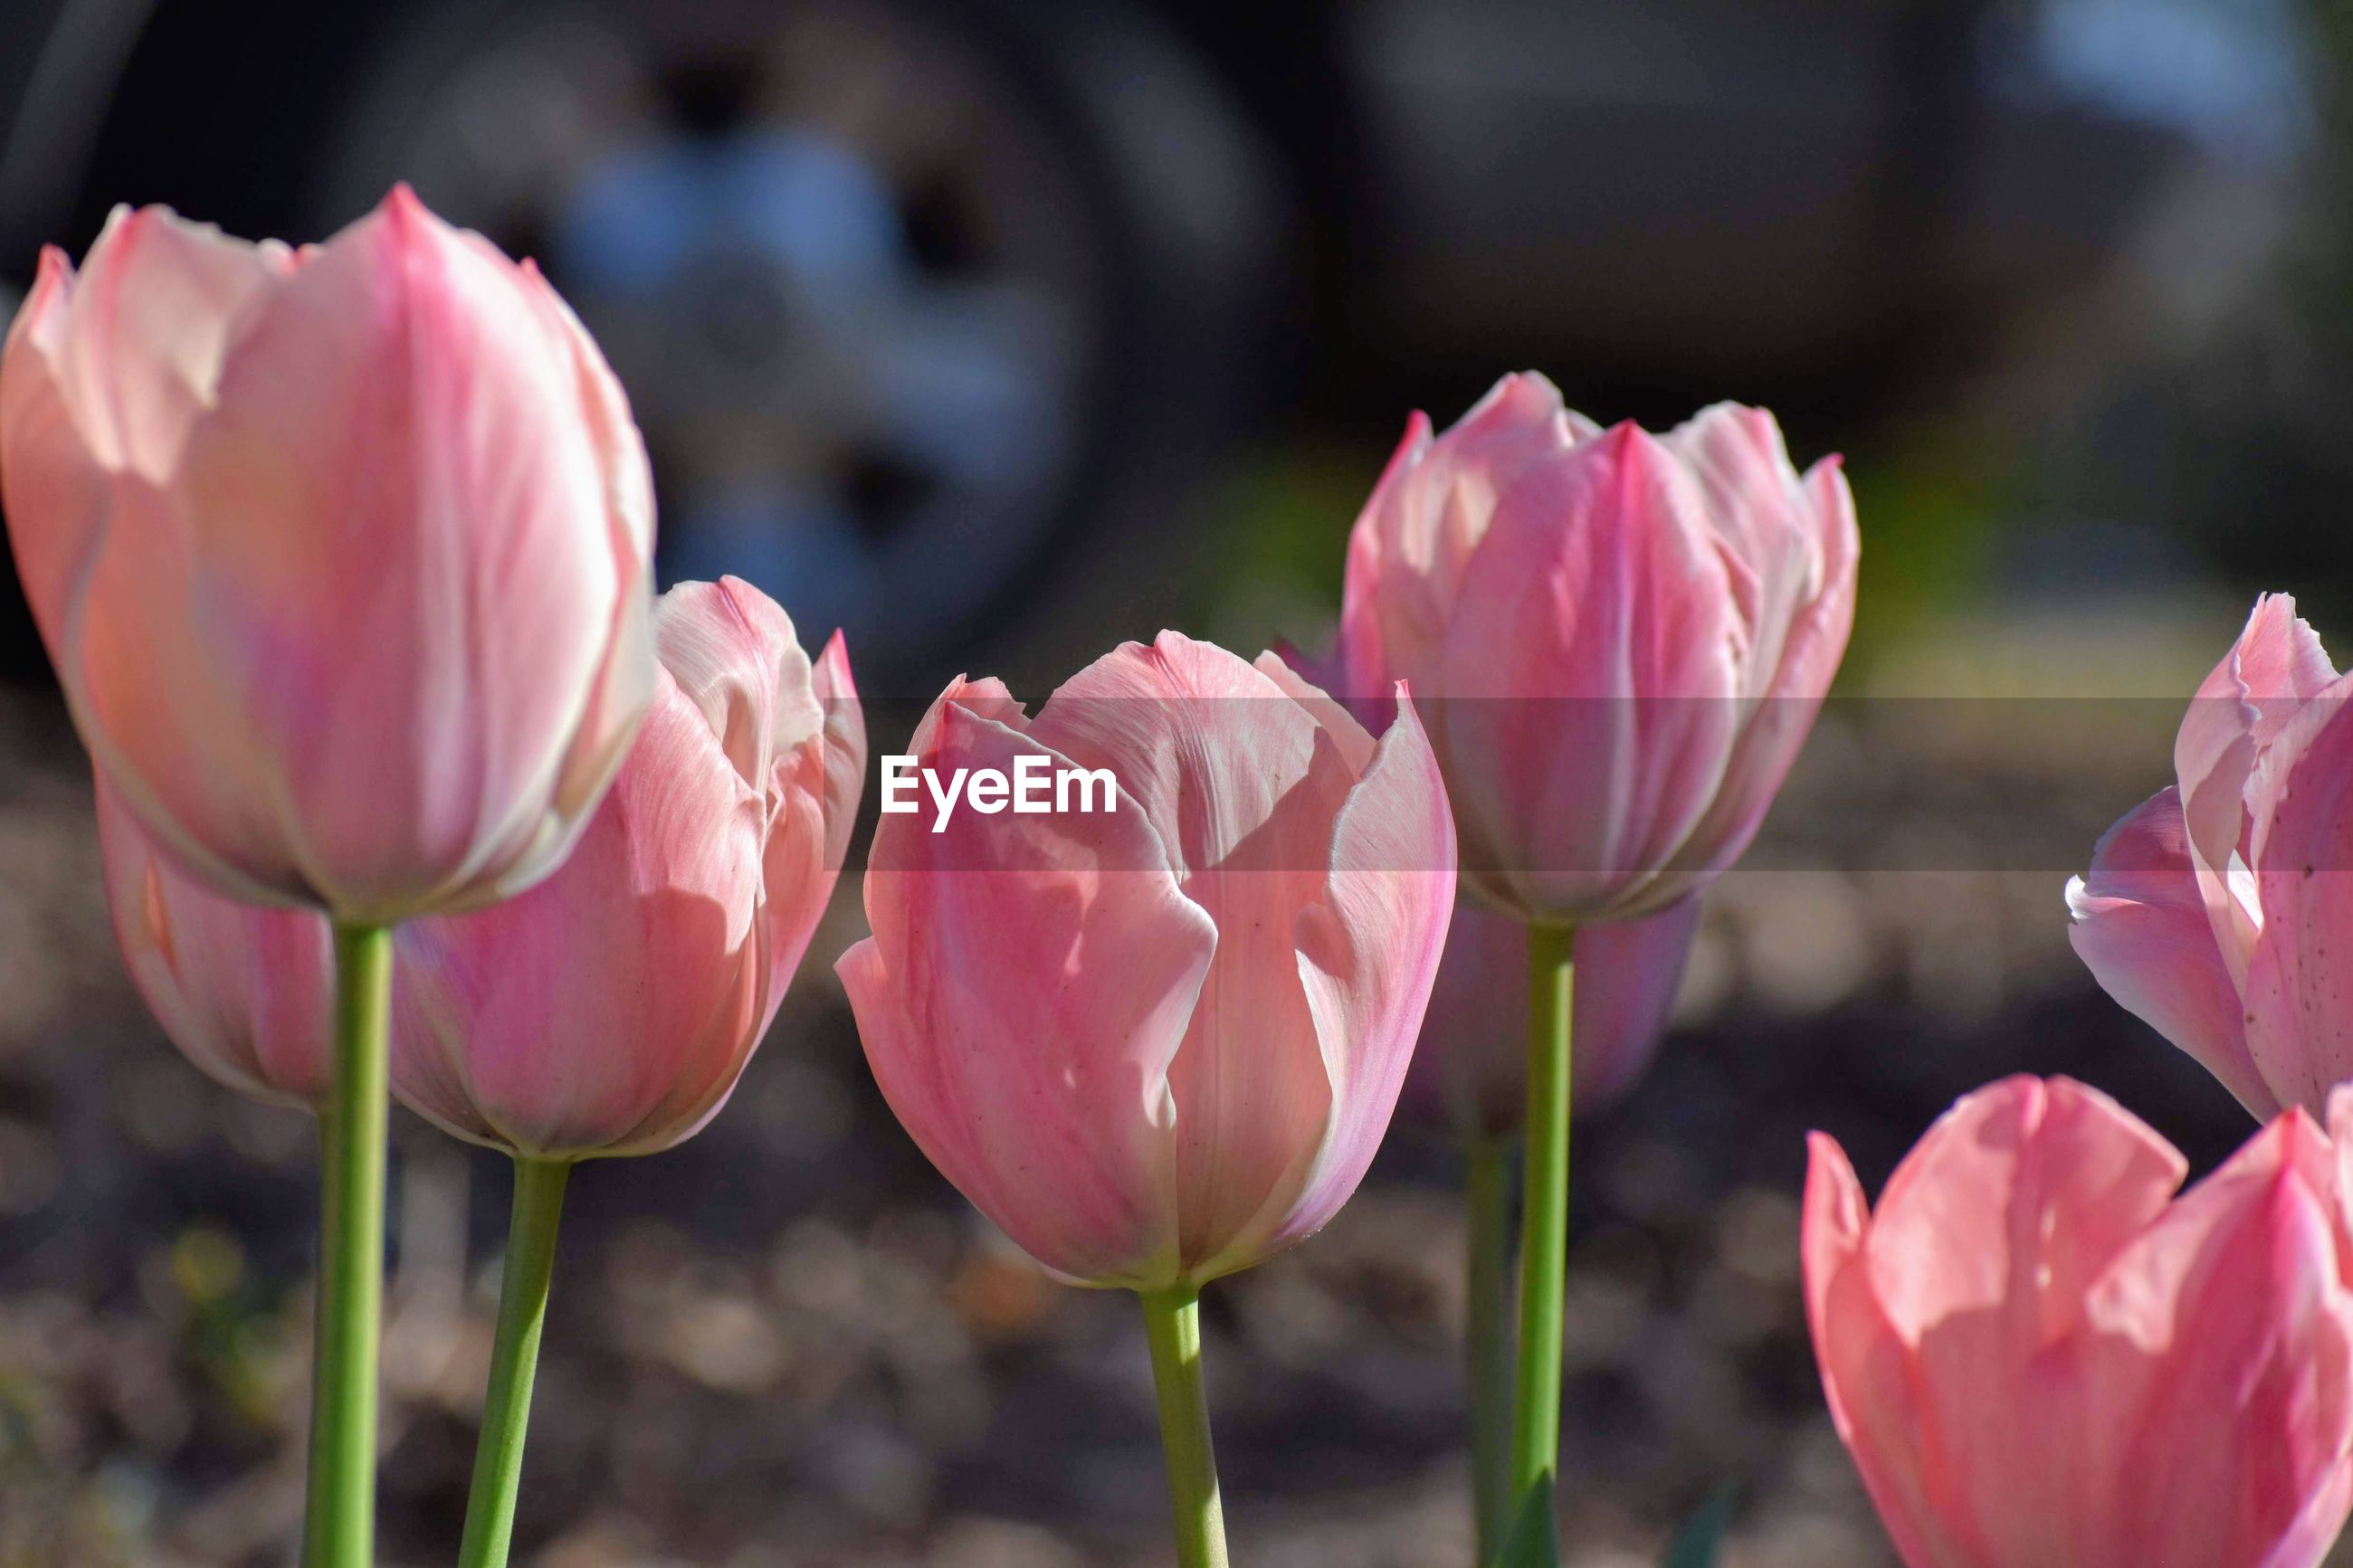 CLOSE-UP OF PINK TULIPS FLOWERS